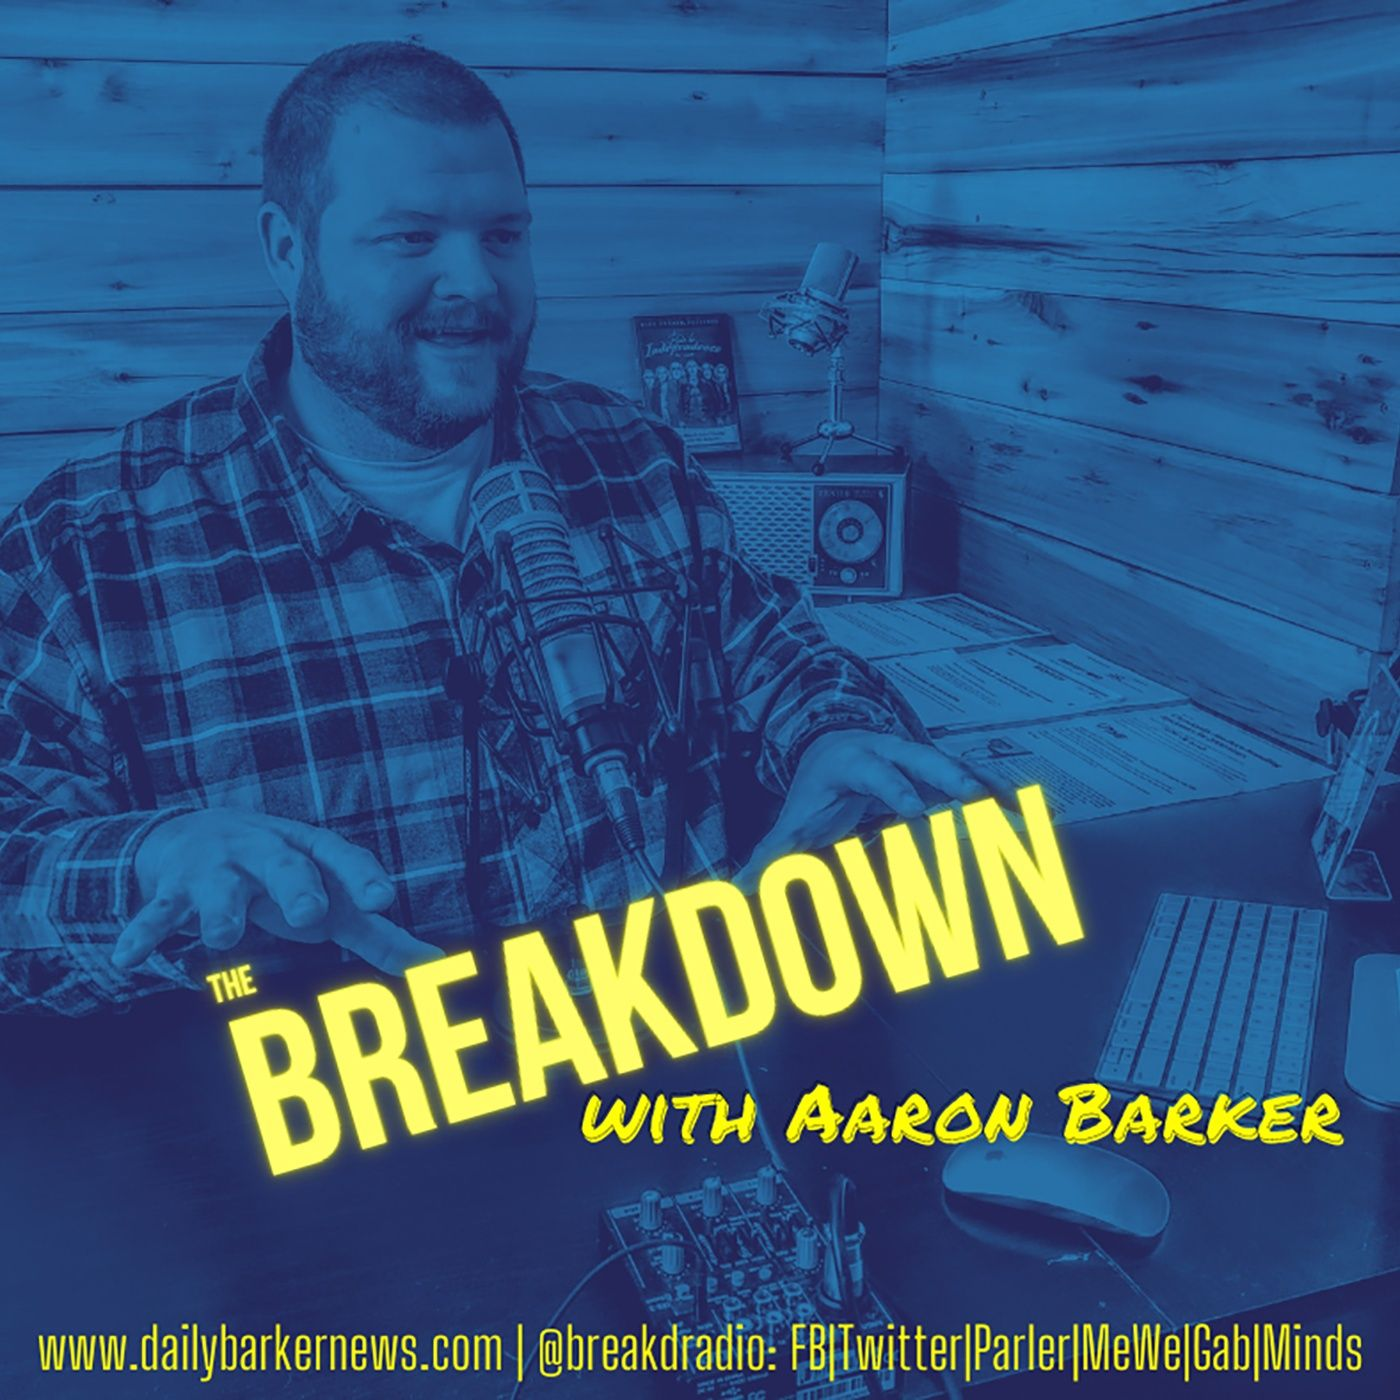 The Breakdown with Aaron Barker - 20210314